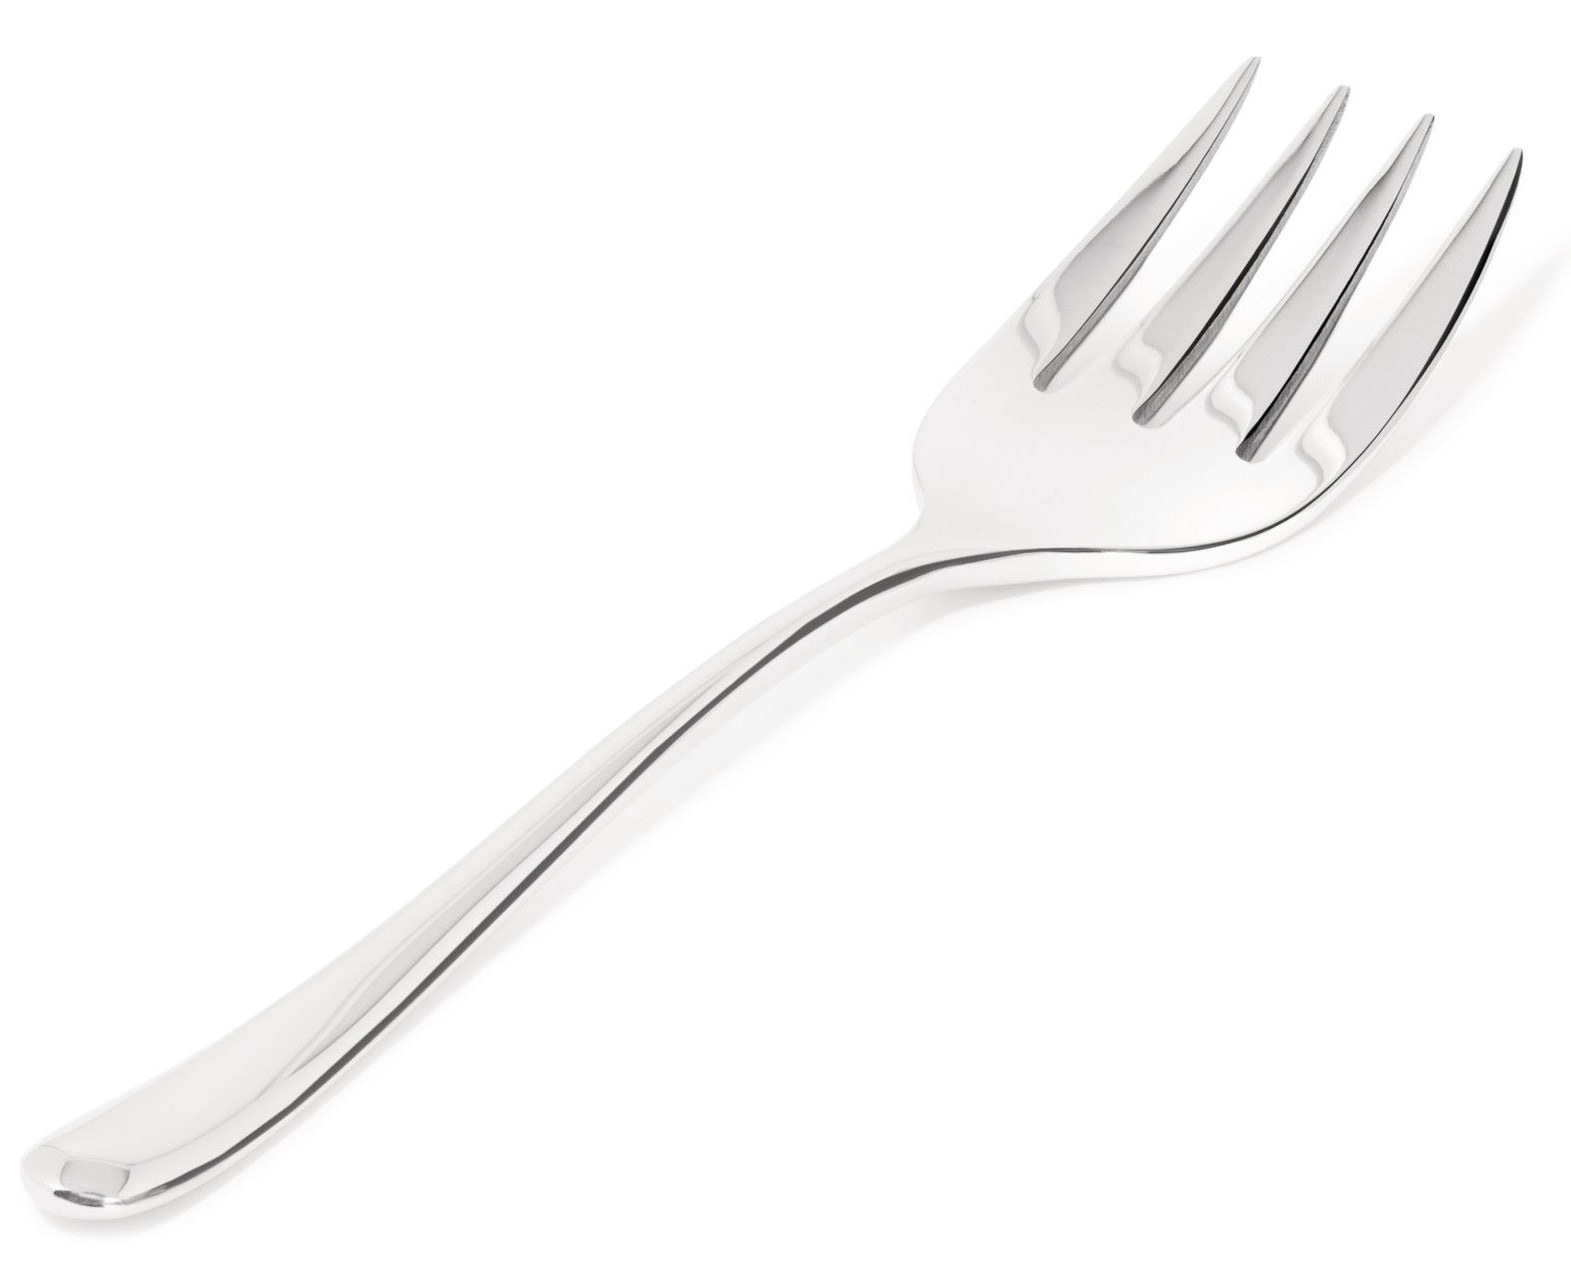 https://grshop.com/media/catalog/product/cache/1/image/9df78eab33525d08d6e5fb8d27136e95/a/l/alessi-caccia-serving-fish-fork-lcd01-19.jpg